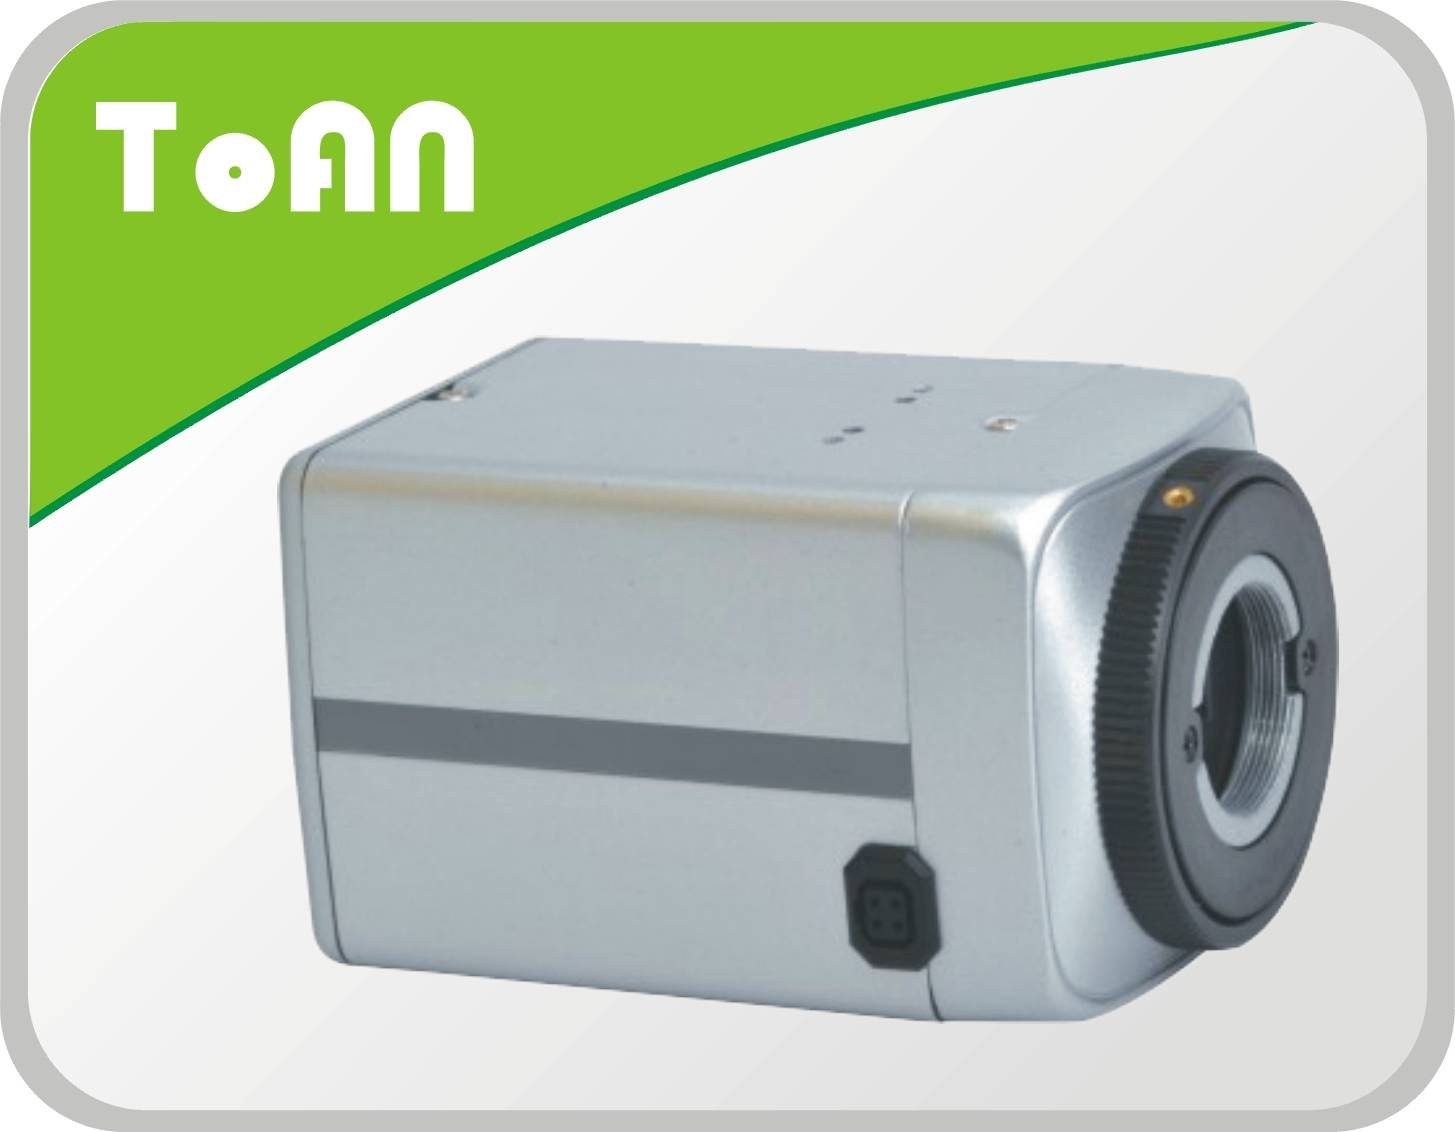 TOAN home security system cctv camera supplier 2 years warranty secure eye cctv cameras